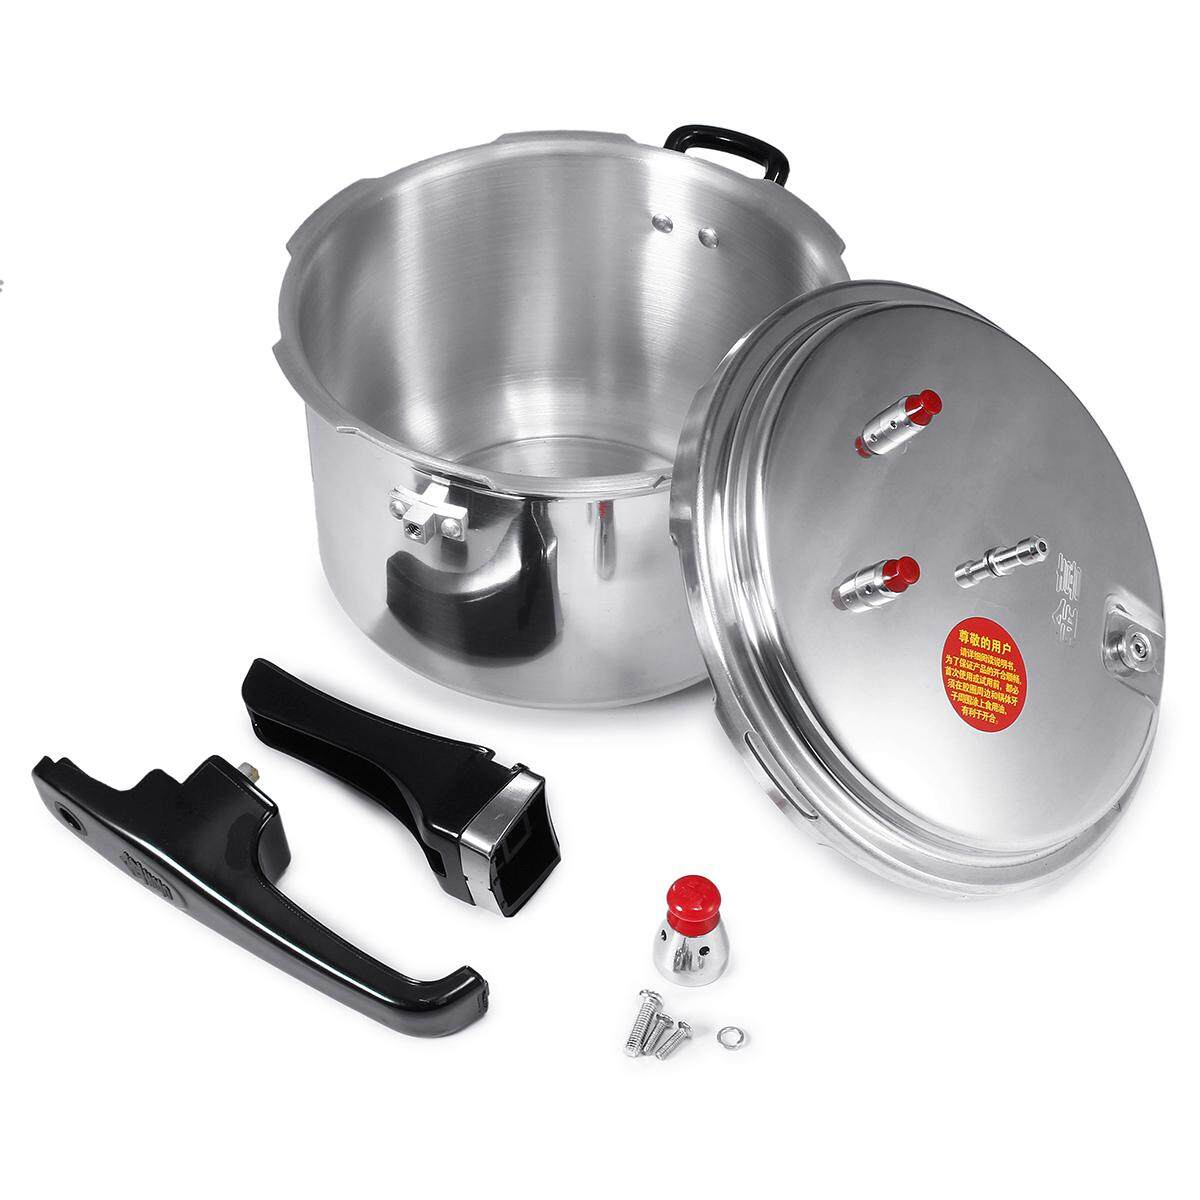 20cm Aluminium Commercial Grade Pressure Cooker 3/4/6.3 Litre 3 Style Kitchen Tools By Freebang.